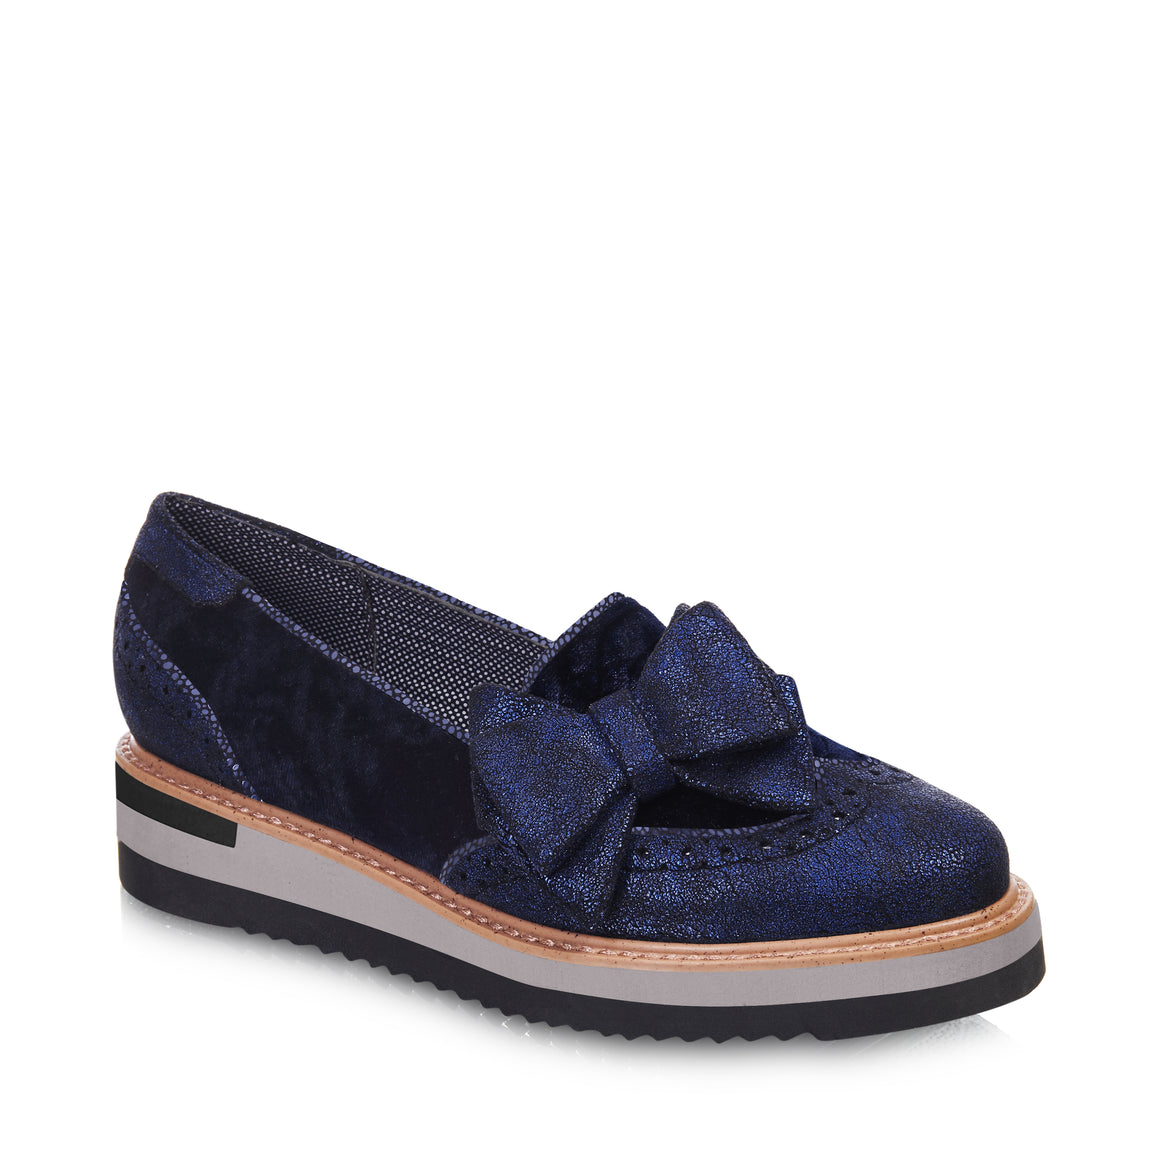 Ruby Shoo Joanne Blue Brogue Shoes